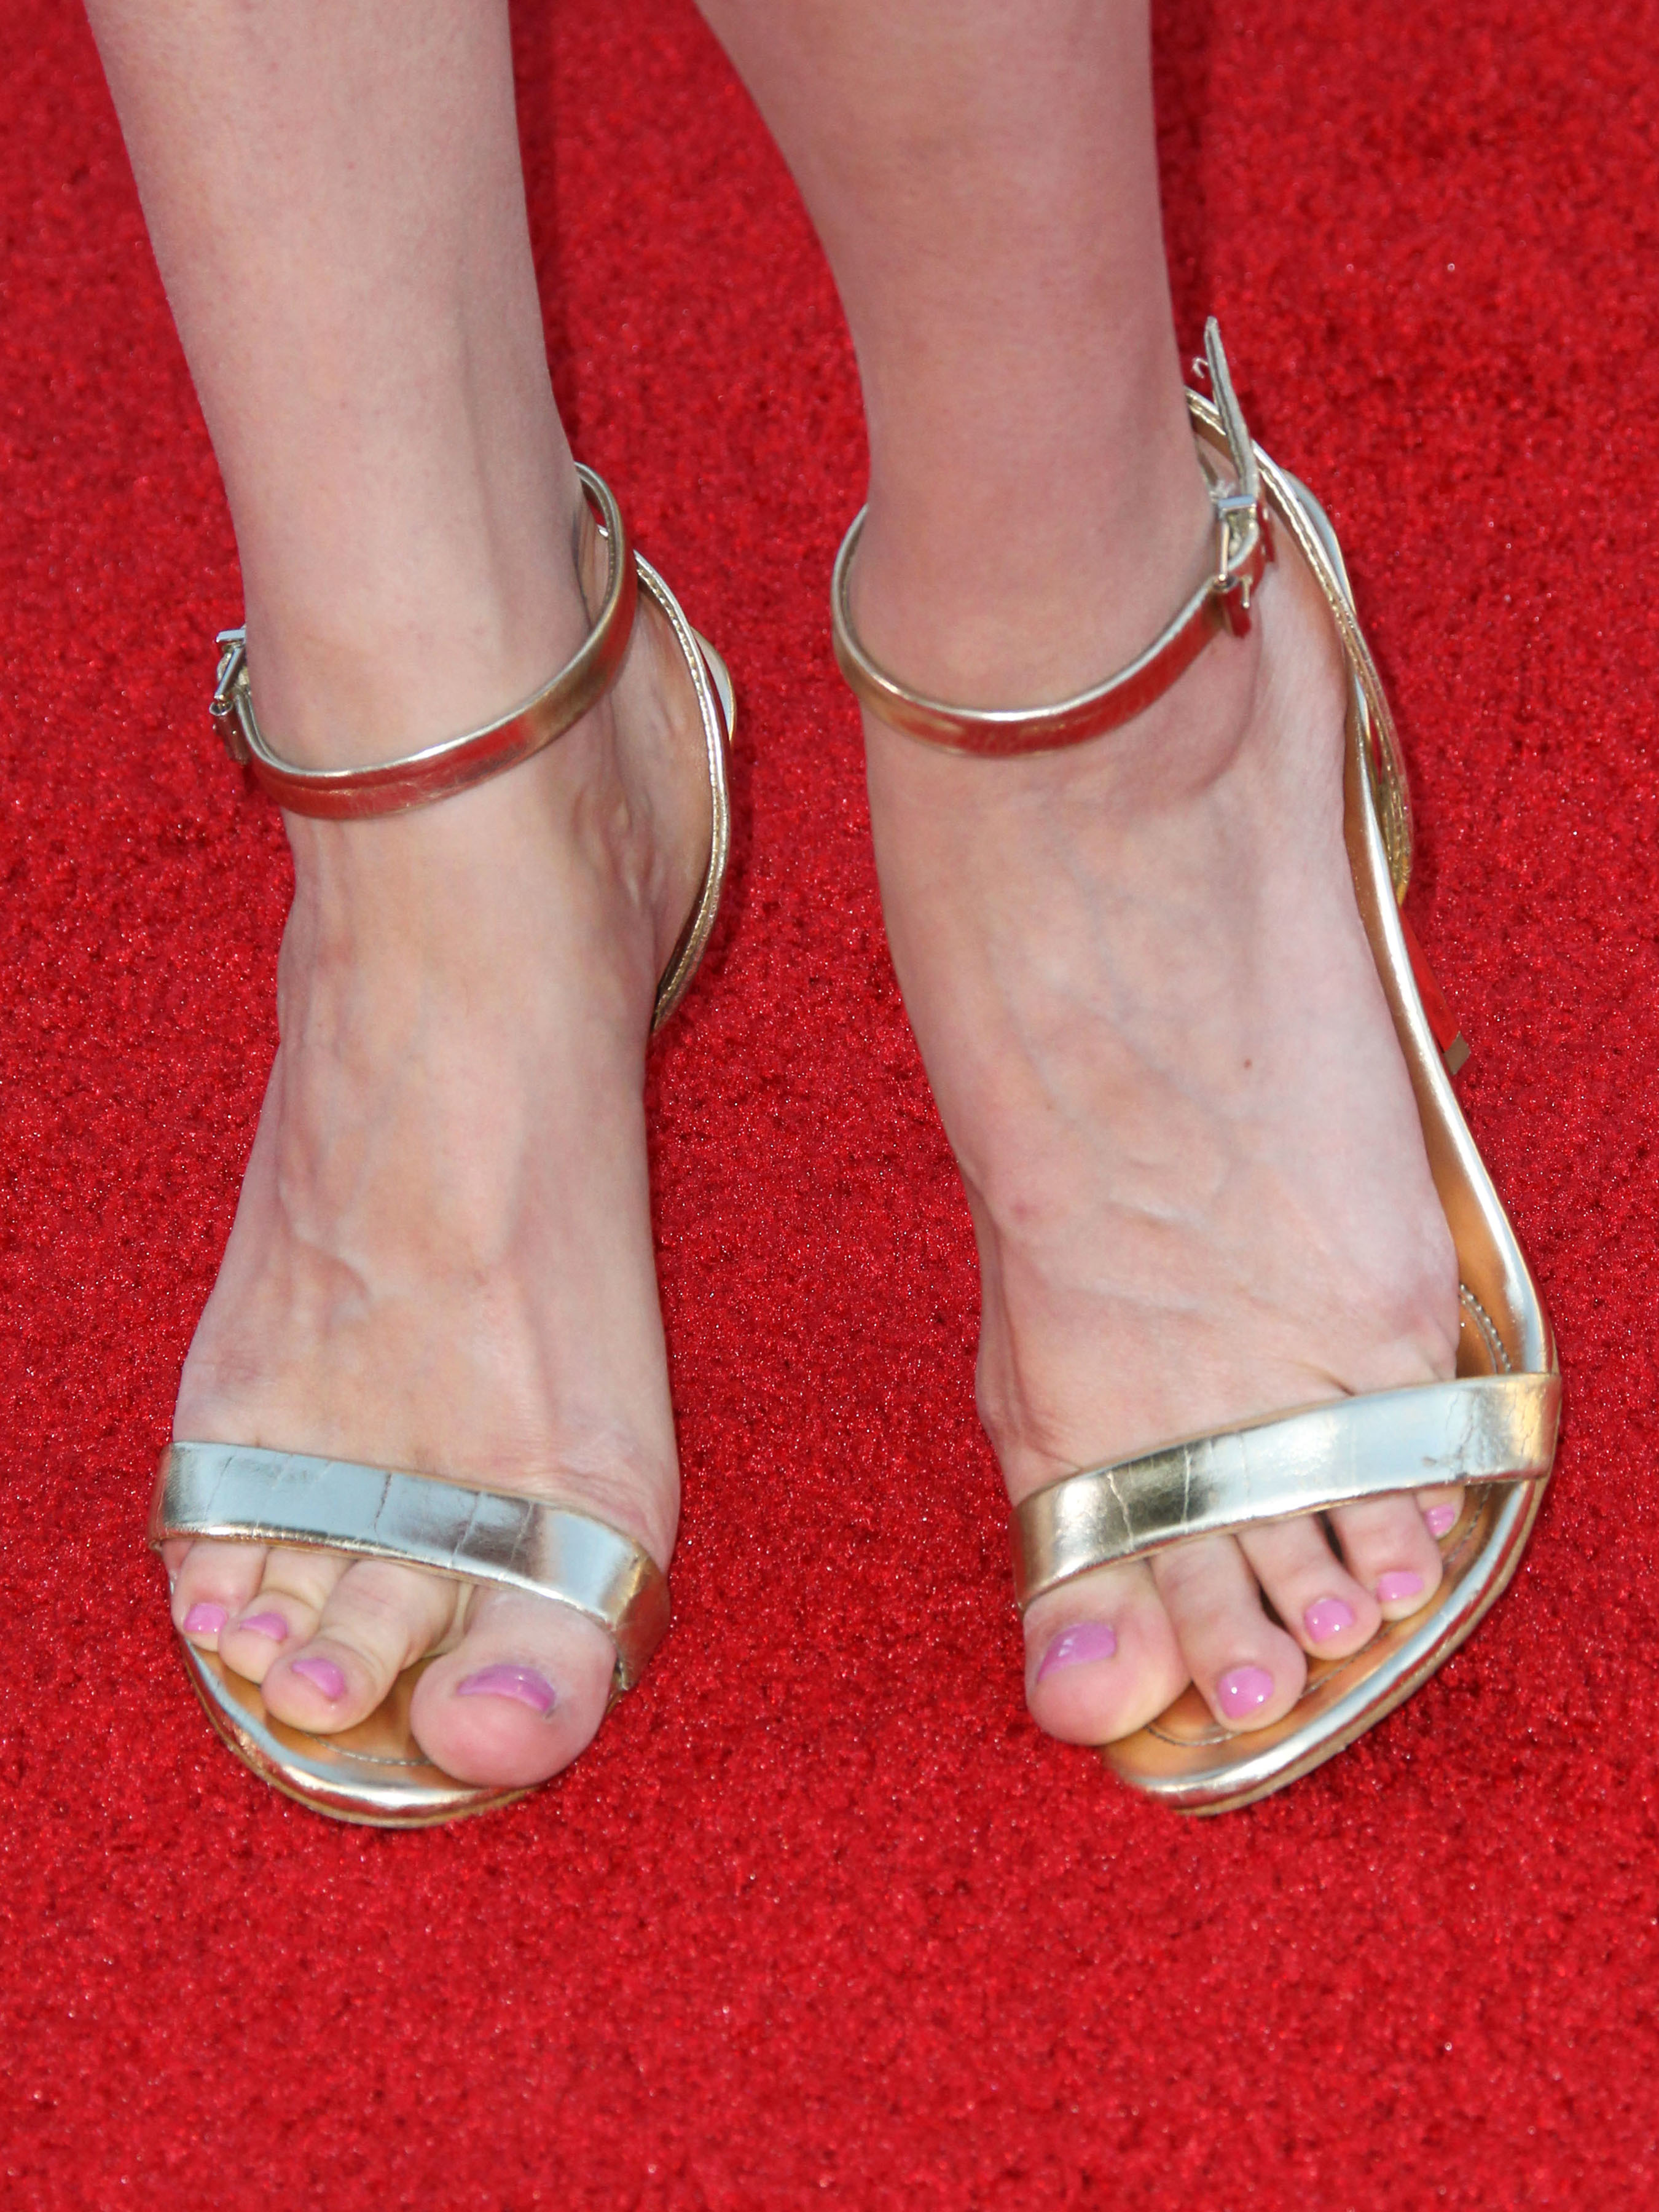 Rapace feet noomi Noomi Rapace